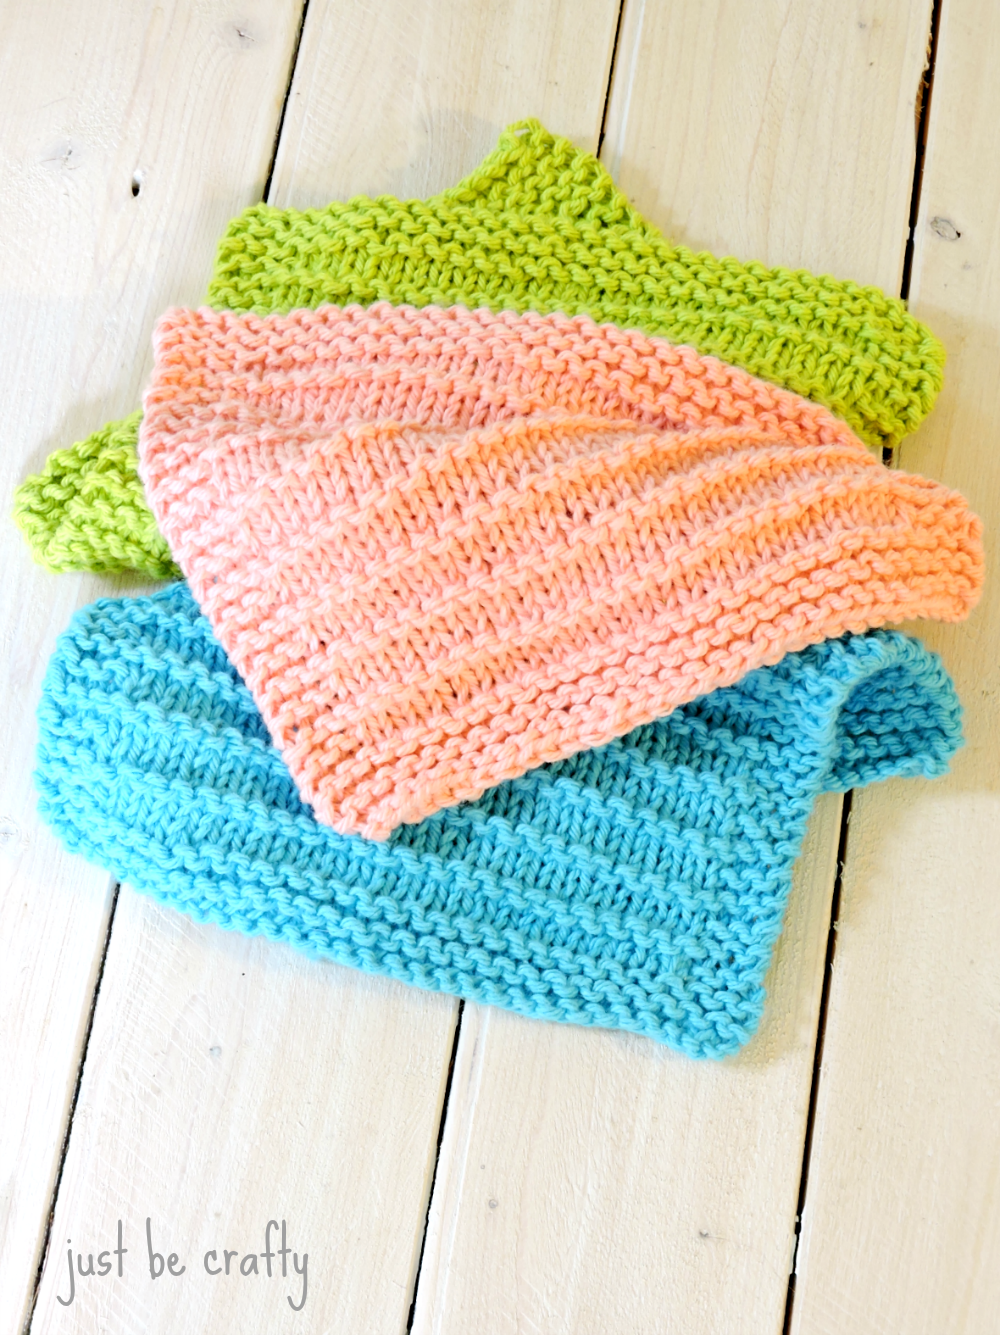 Farmhouse Kitchen Knitted Dishcloths | Knitted dishcloths, Farmhouse ...